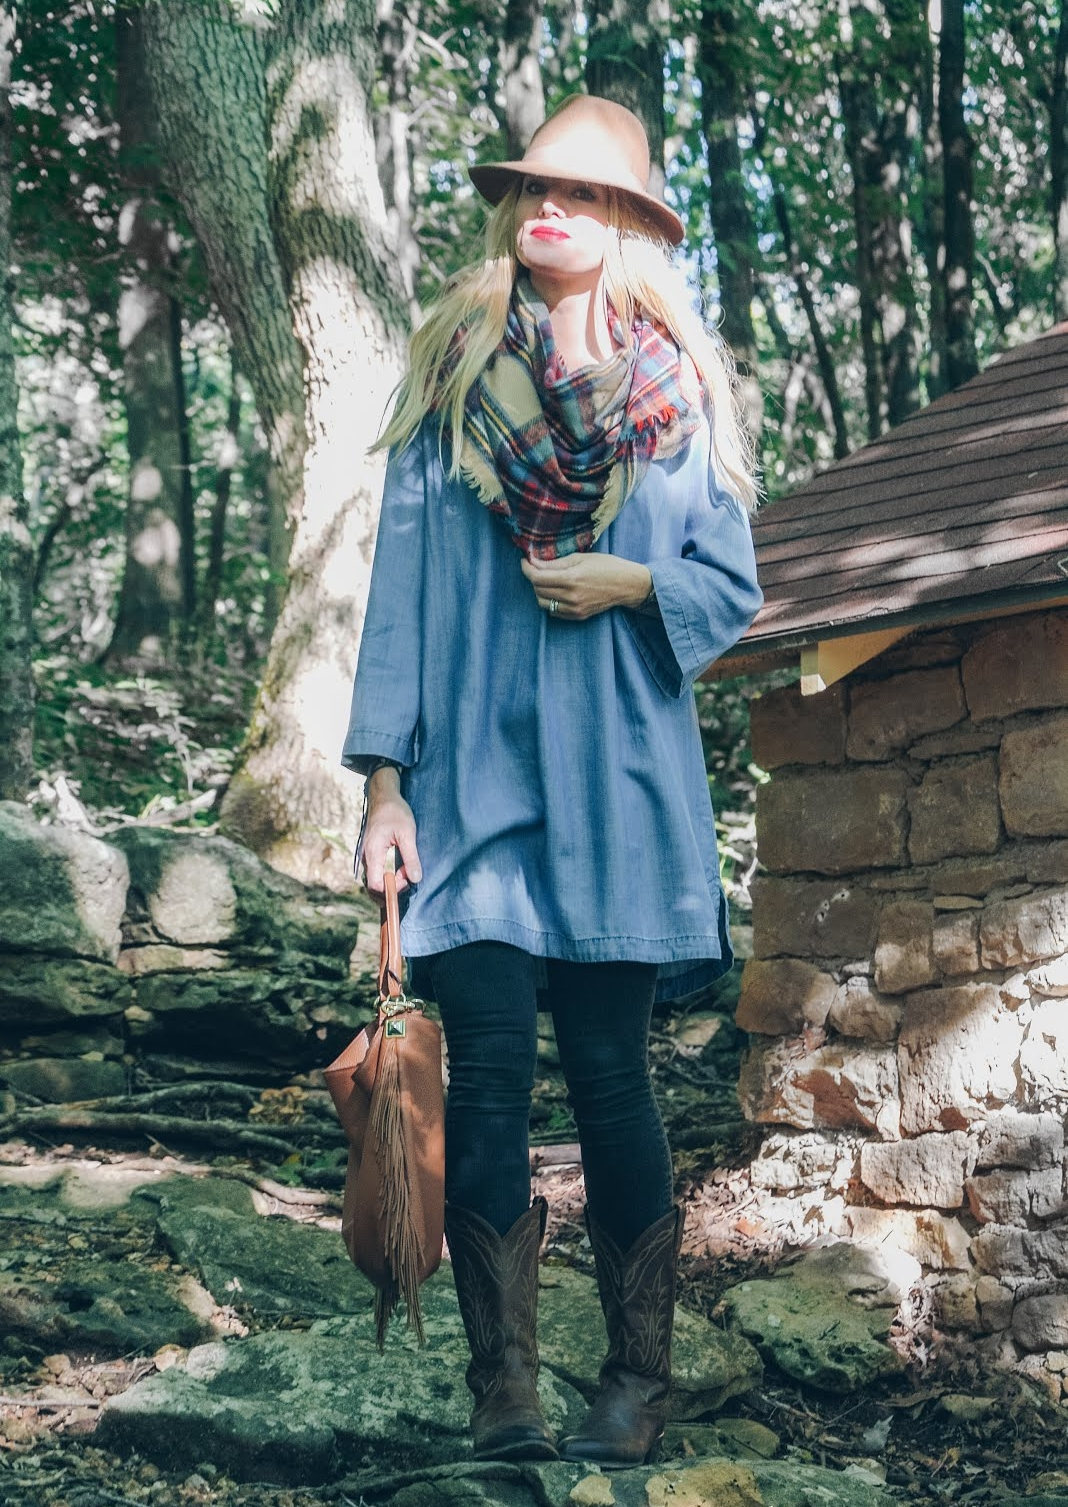 chambray tunic outfit with cowboy boots. felt wool fedora. fringe bag. cowboy boots outfit. fall outfit-28.jpg